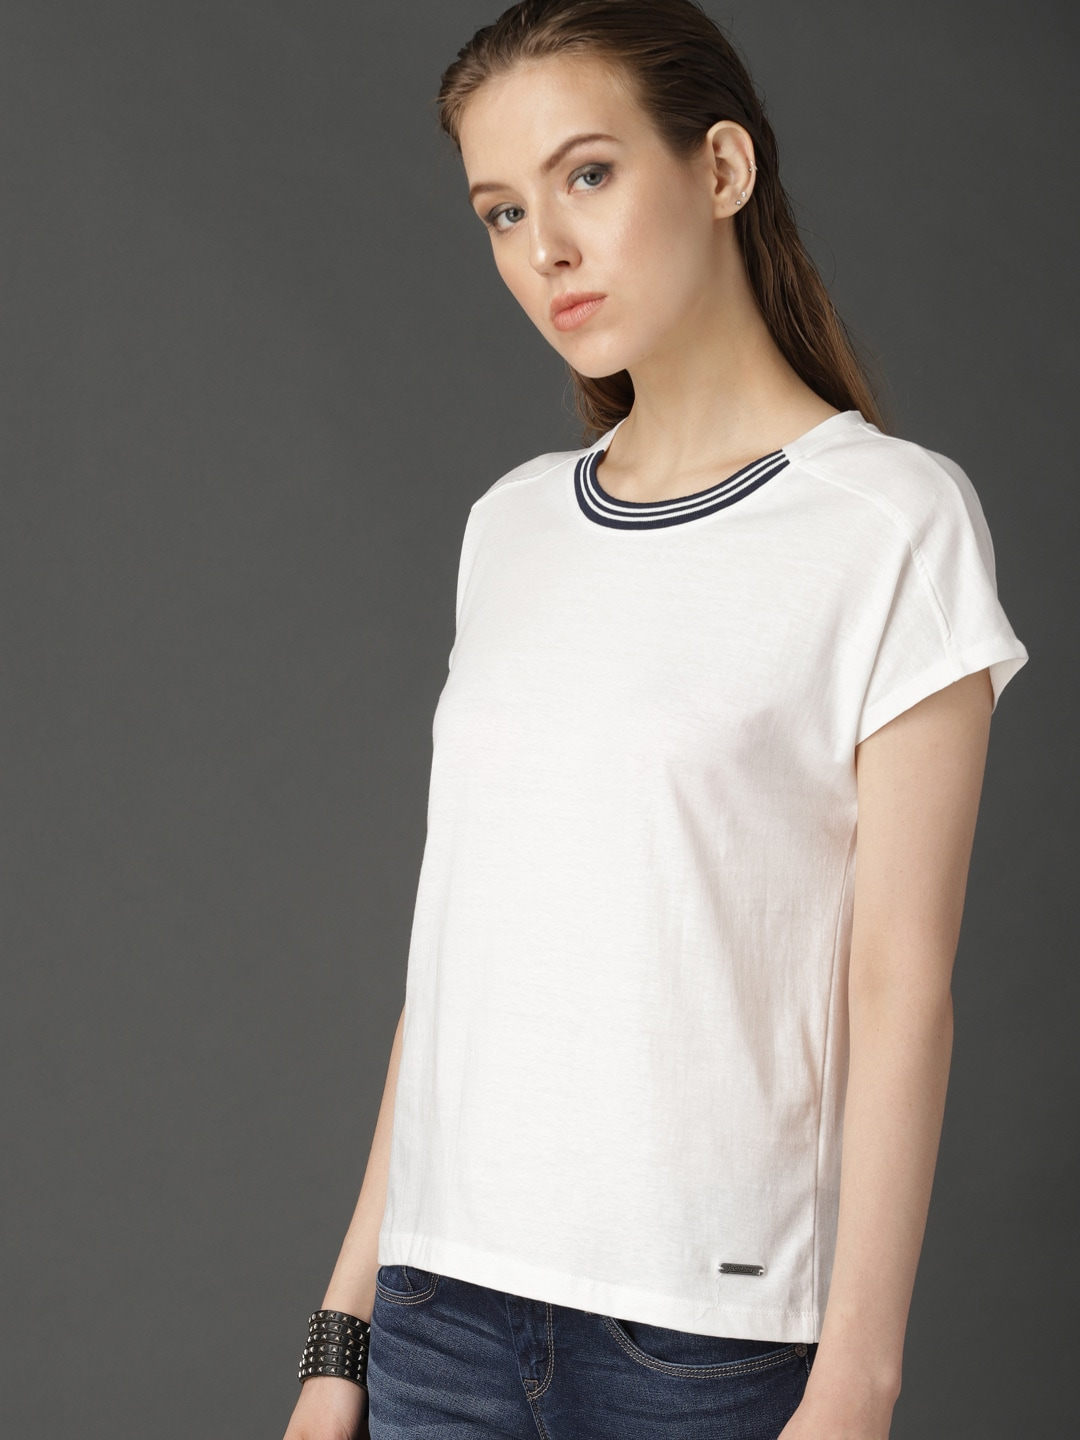 ece504a731b Ladies Tops - Buy Tops   T-shirts for Women Online